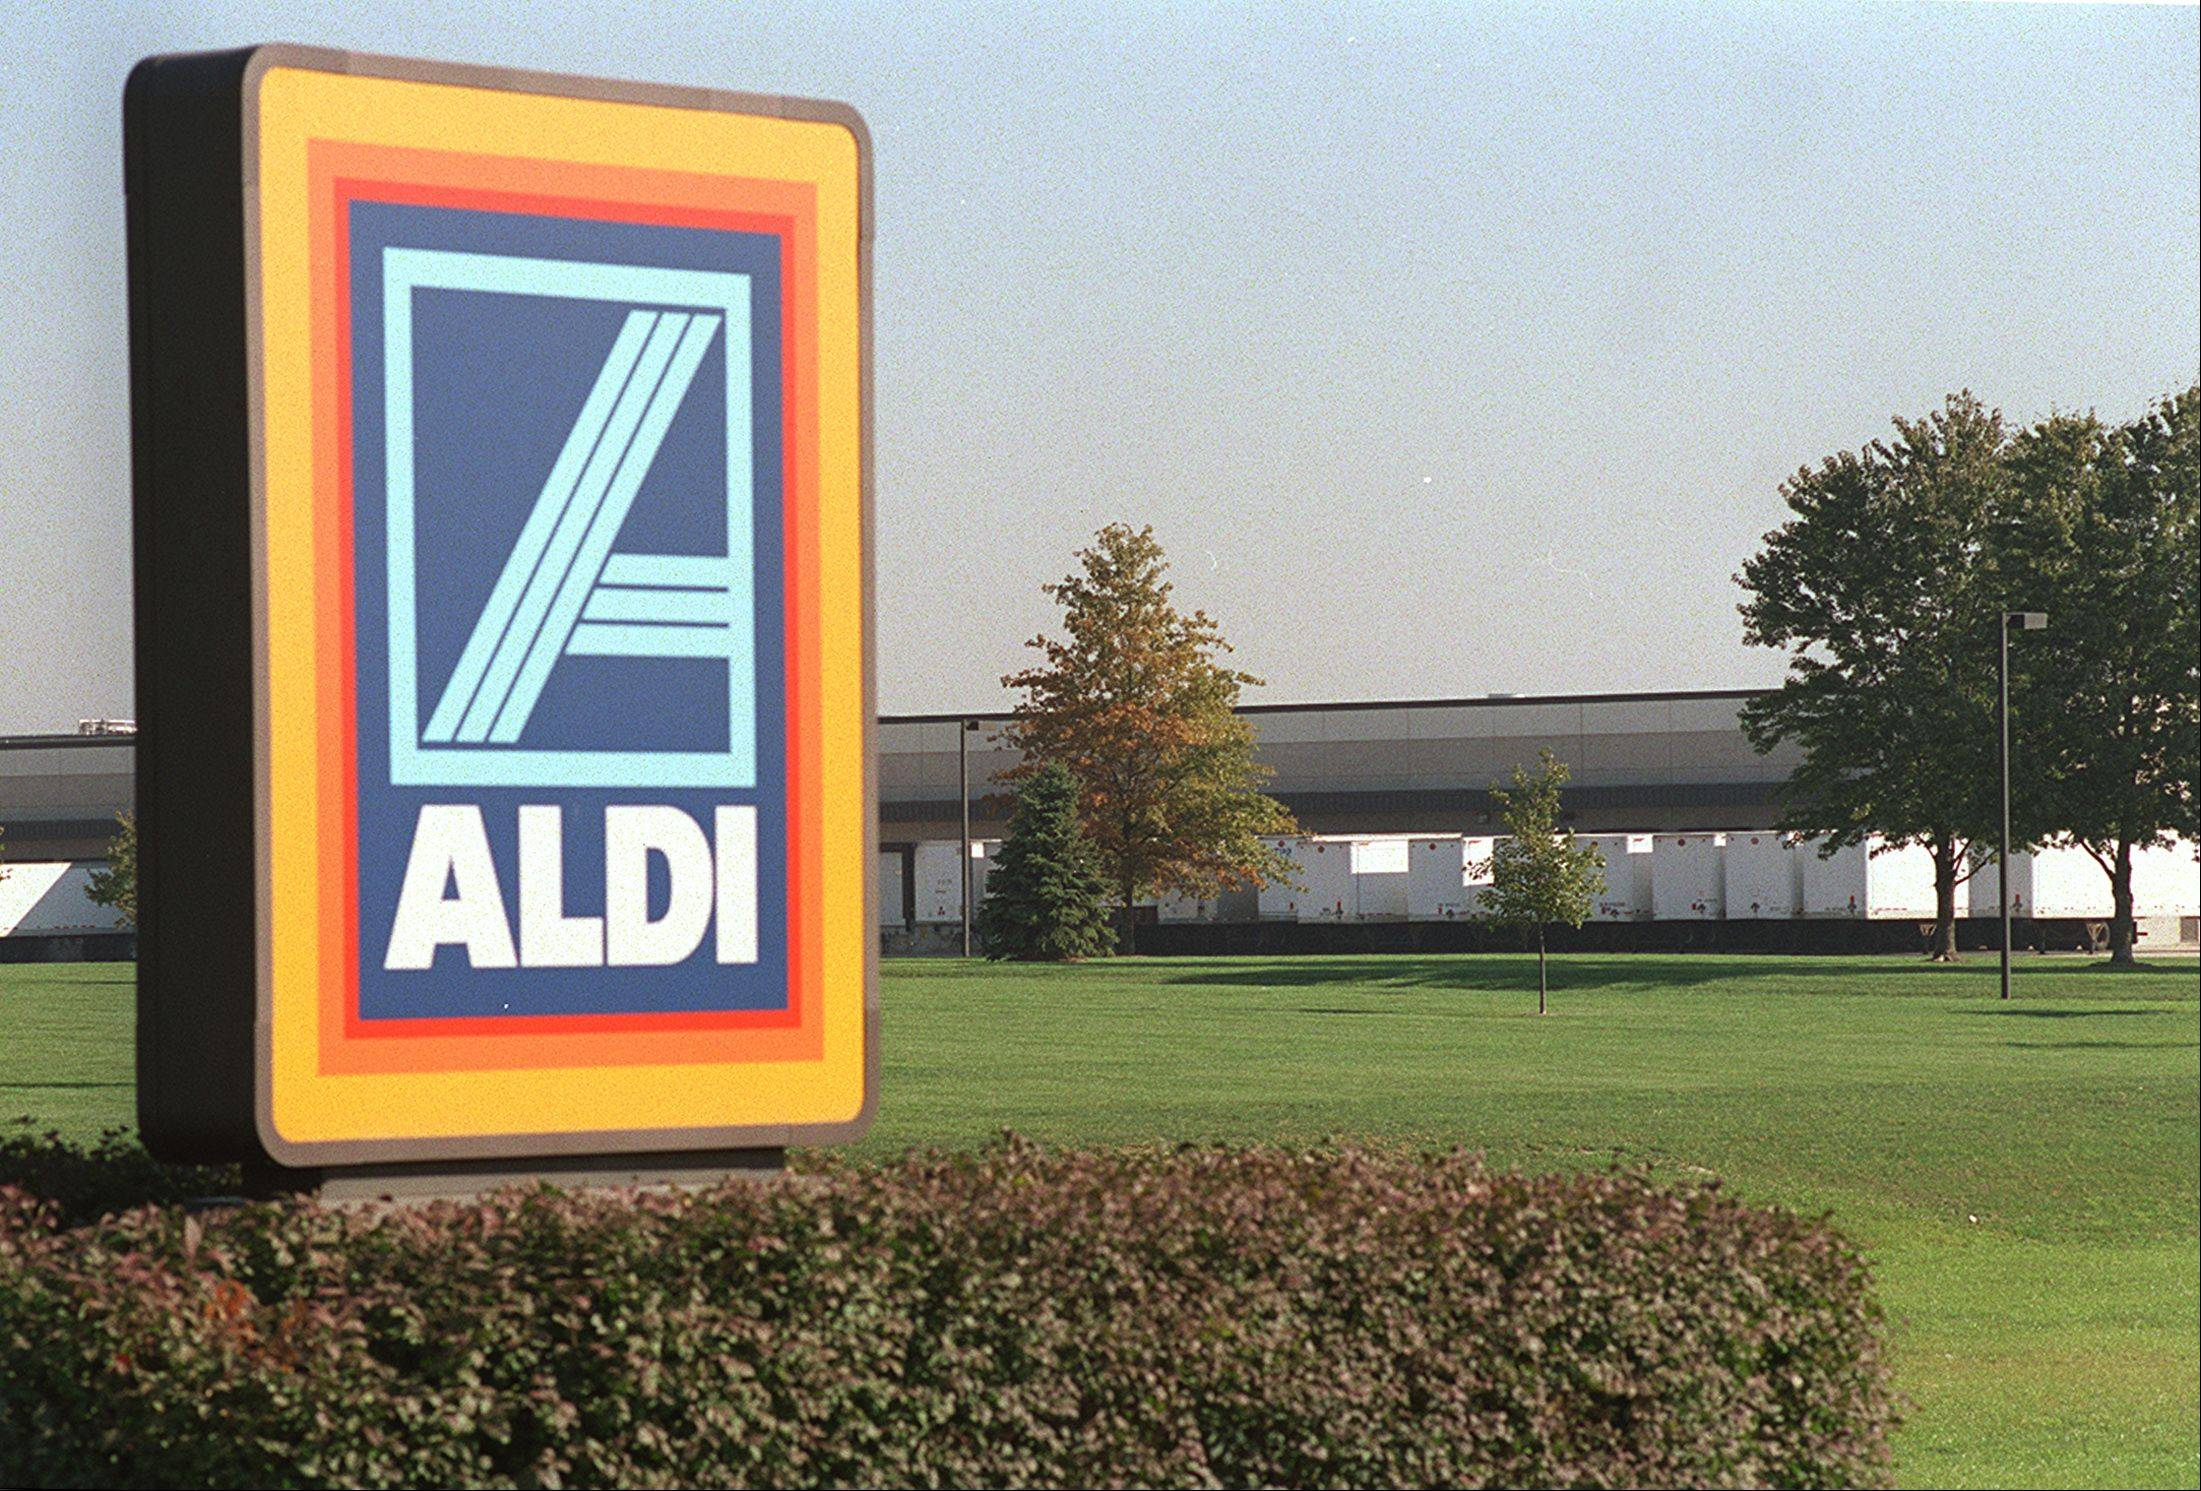 Batavia-based discount grocer Aldi was recognized as the nation's low-price grocery leader for the third year in a row, according t